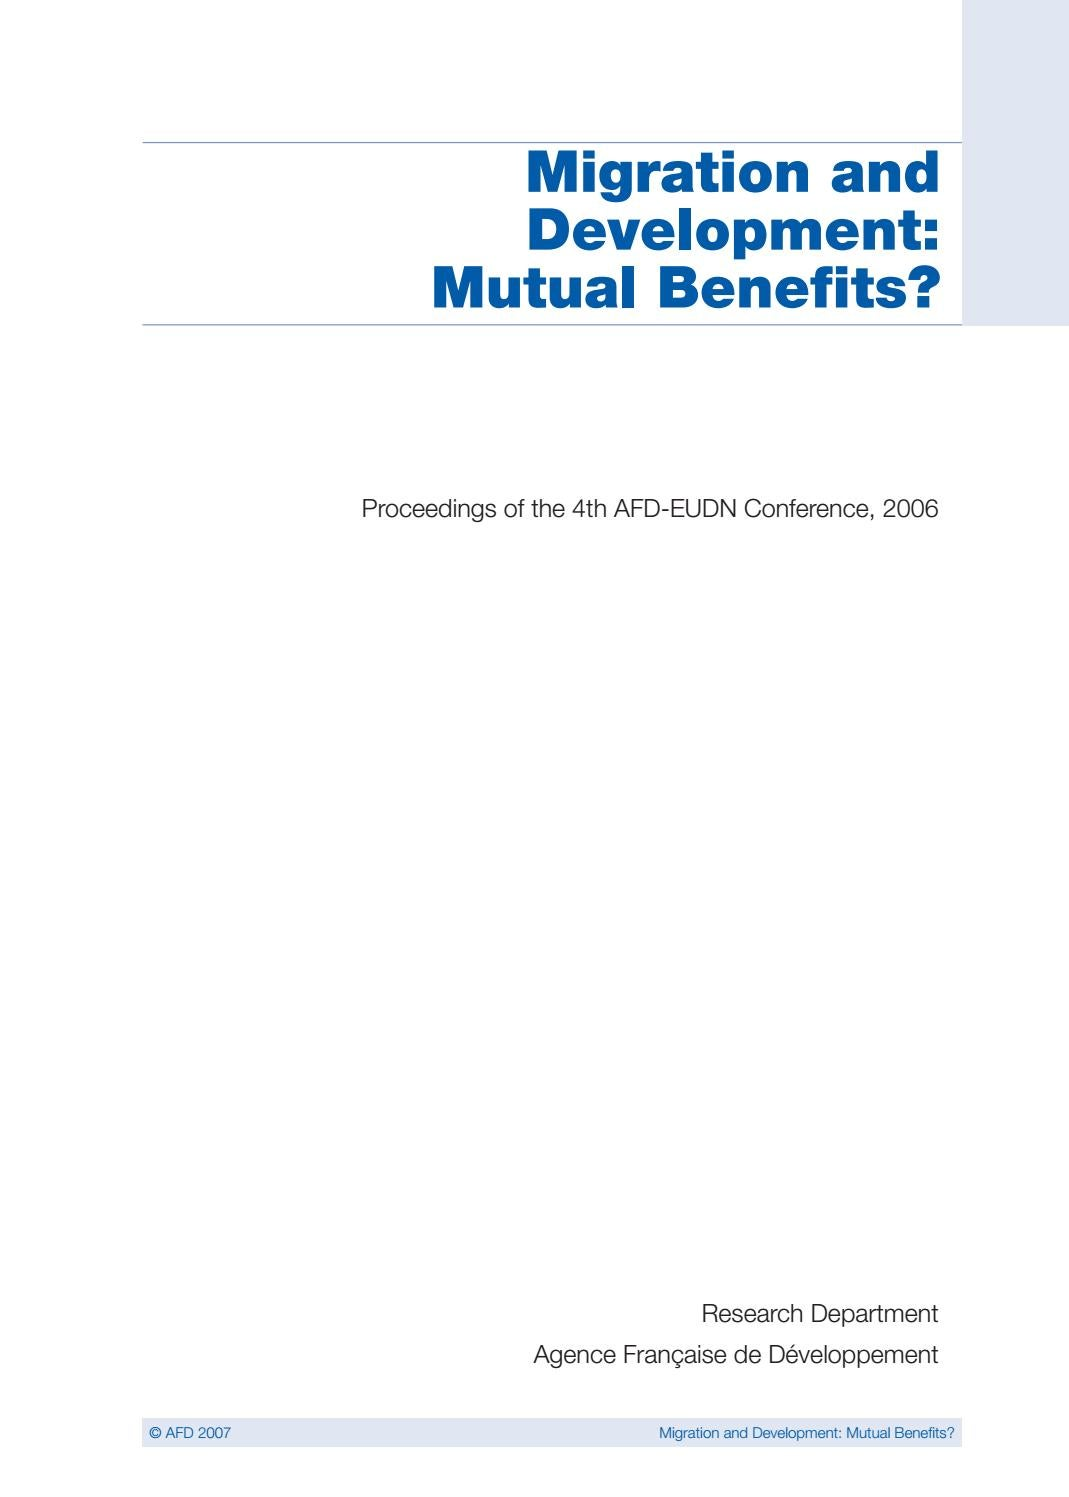 Cash Pool C'est Quoi Migration And Development Mutual Benefits Proceedings Of The 4th Afd Eudn Conference 2006